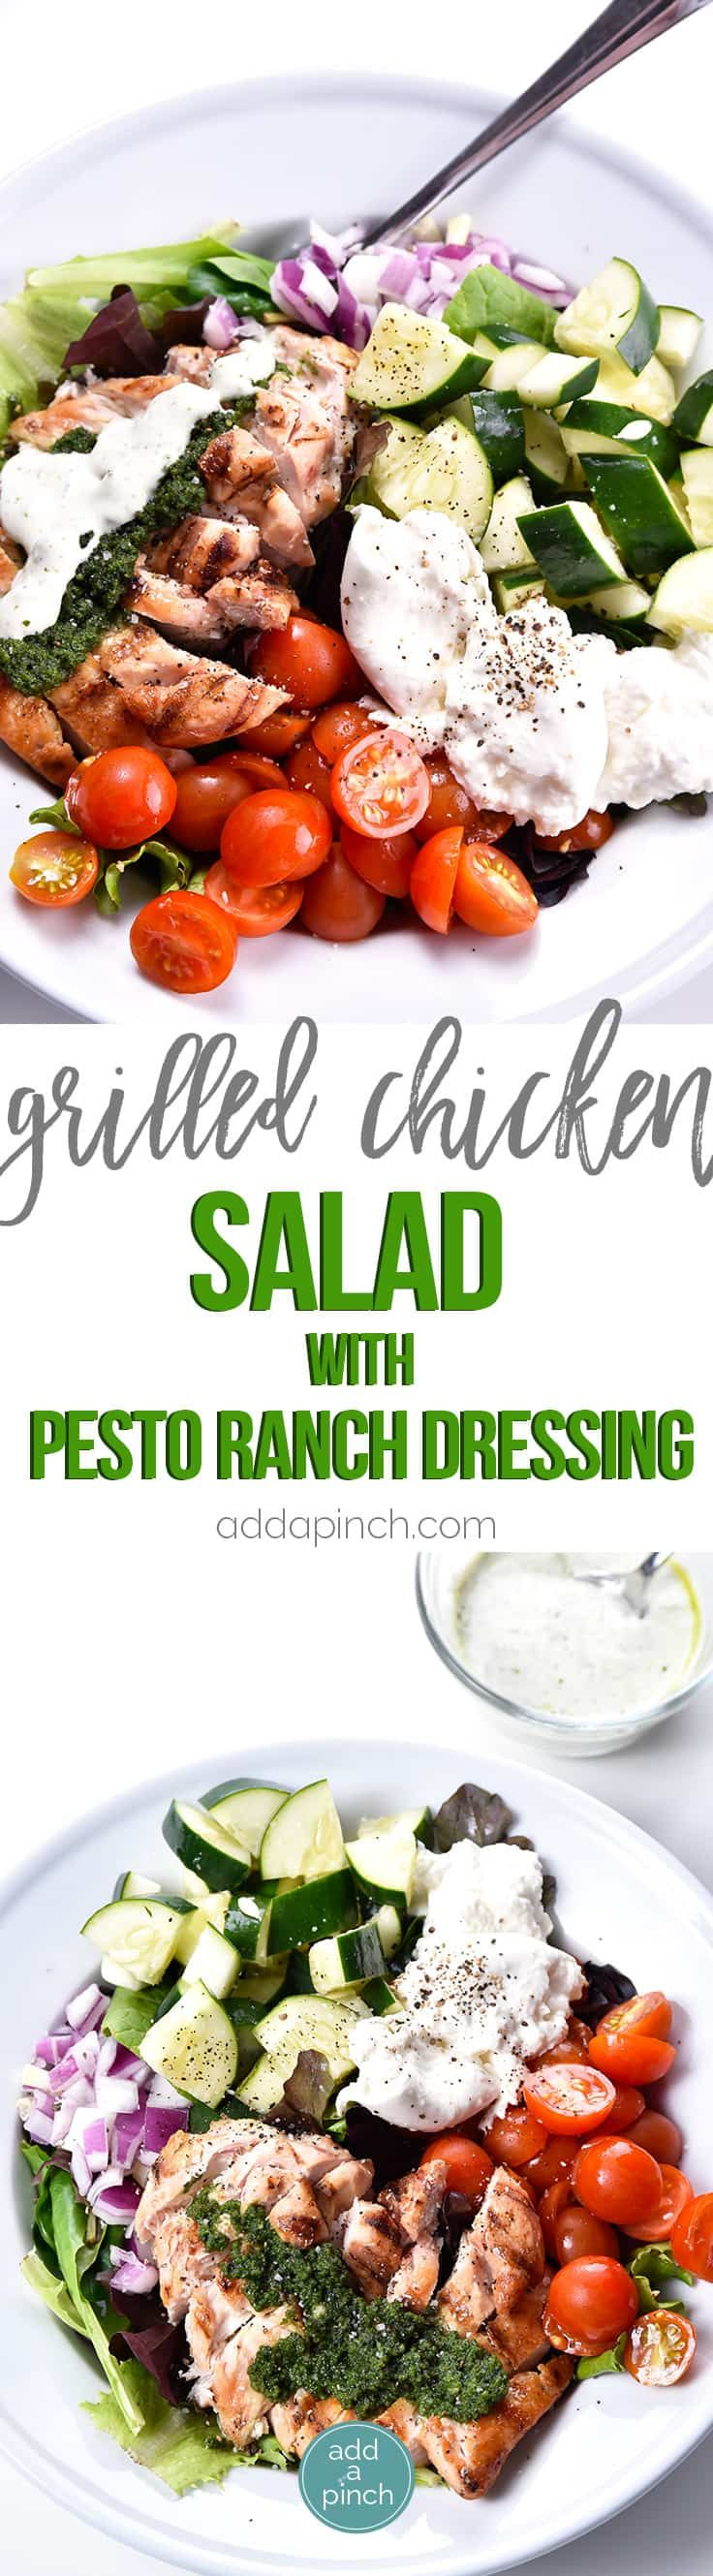 Grilled Chicken Salad with Pesto Ranch Dressing Recipe makes a delicious salad with cucumbers, tomatoes, onion, mozzarella topped with grilled chicken and a pesto ranch dressing! // addapinch.com